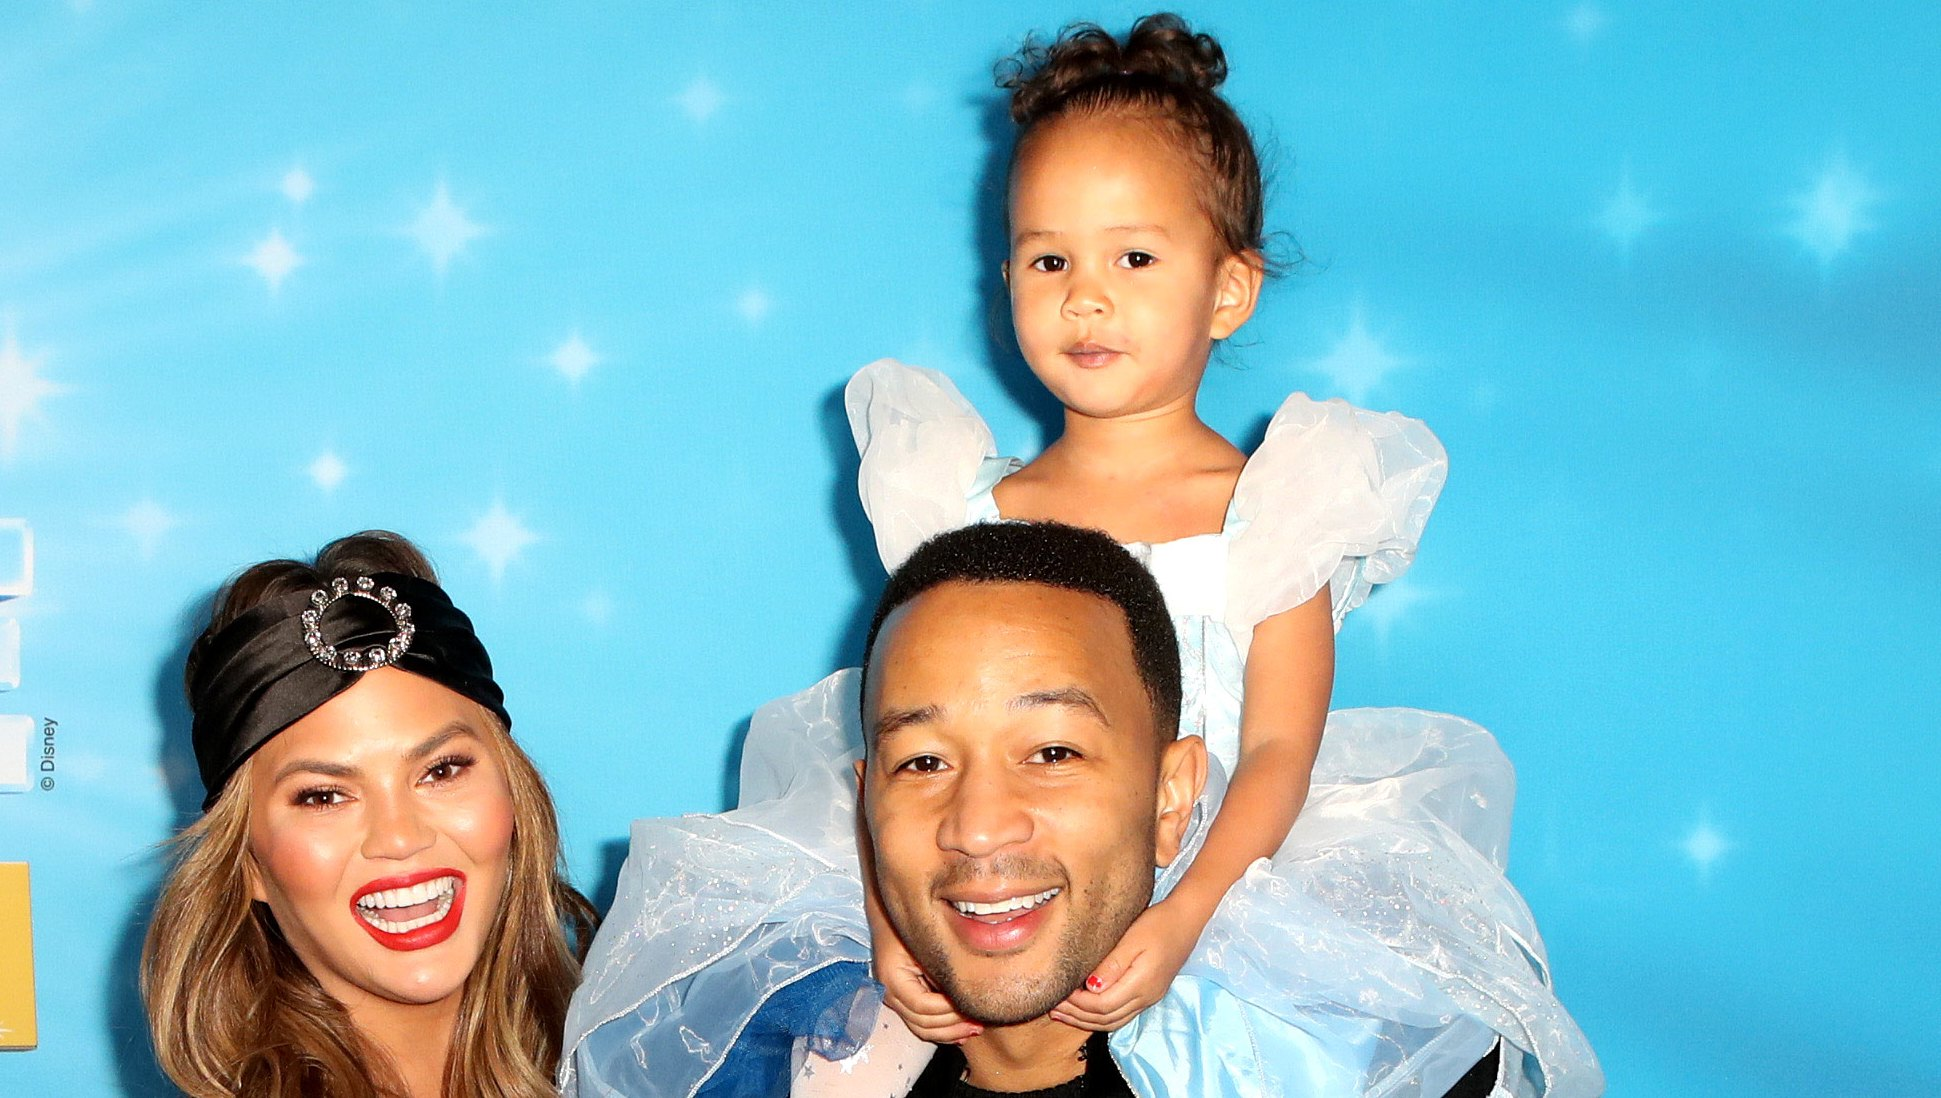 Chrissy Teigen Cooks With Daughter Luna, Shows Off 'My Own Knives'